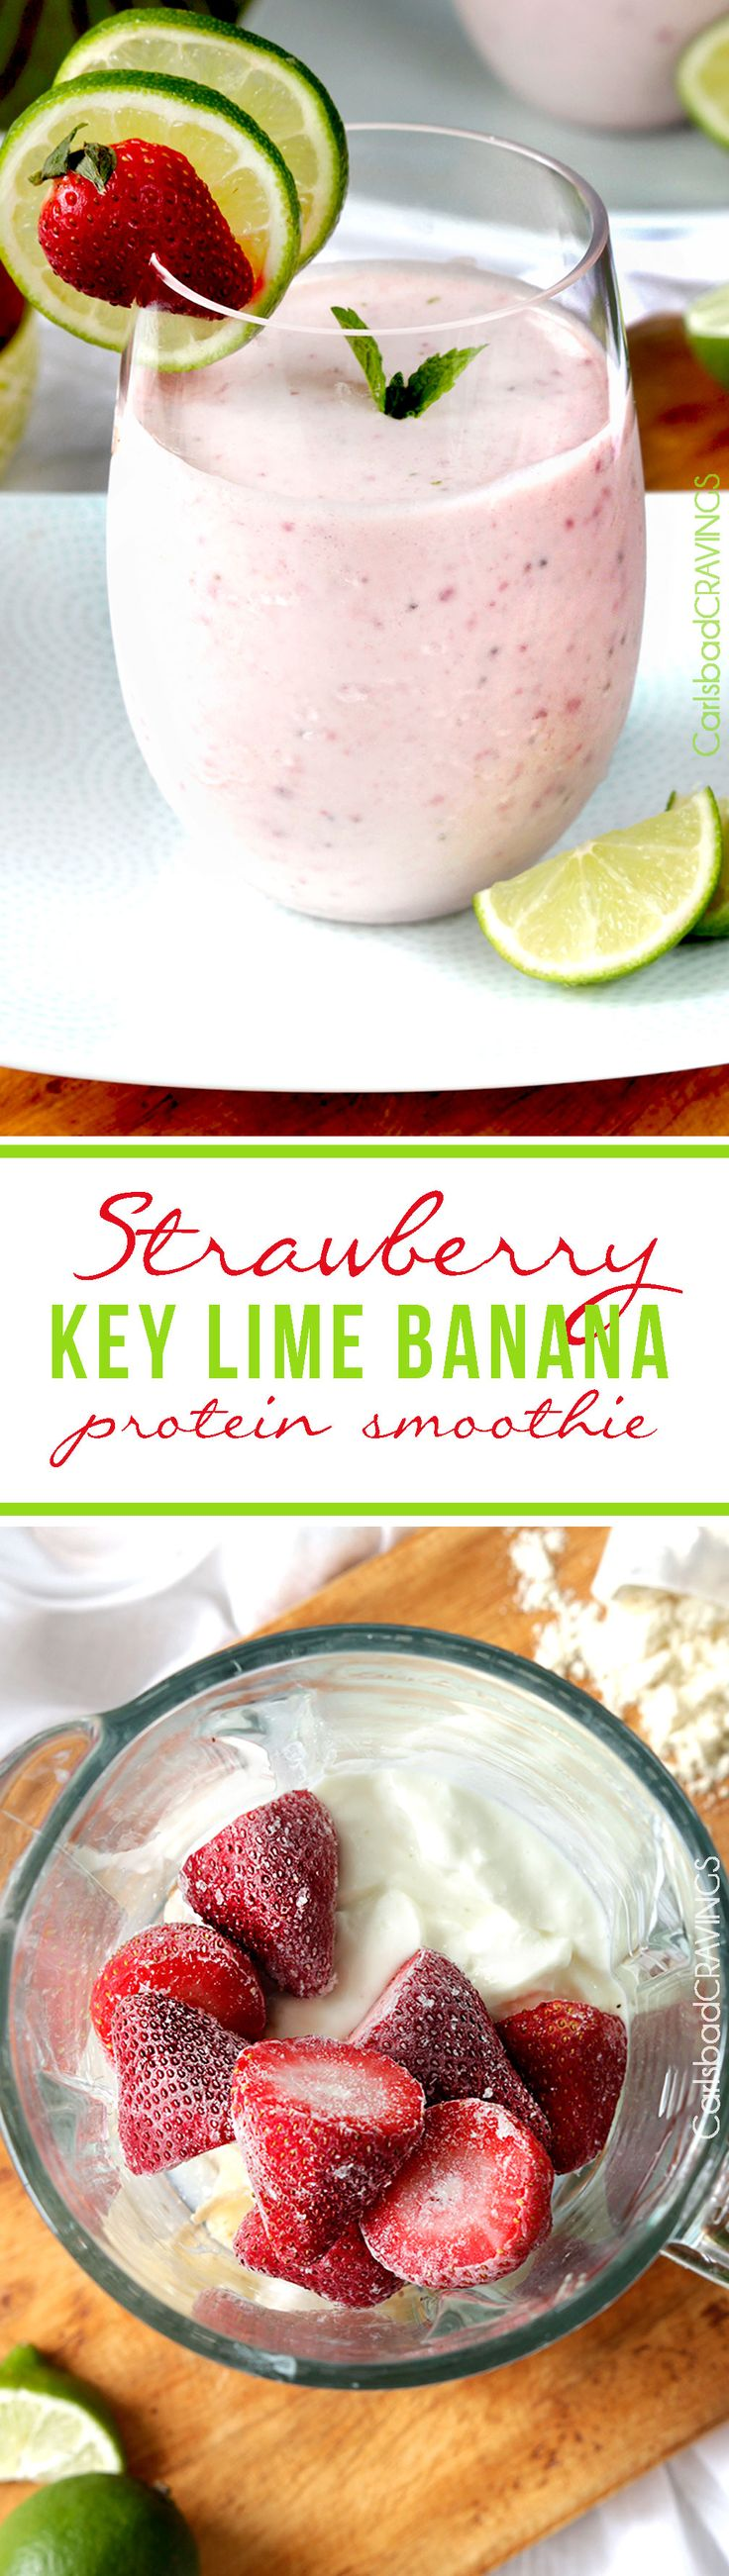 Beverage Recipes: Strawberry Key Lime Banana Protein Smoothie - Carl...